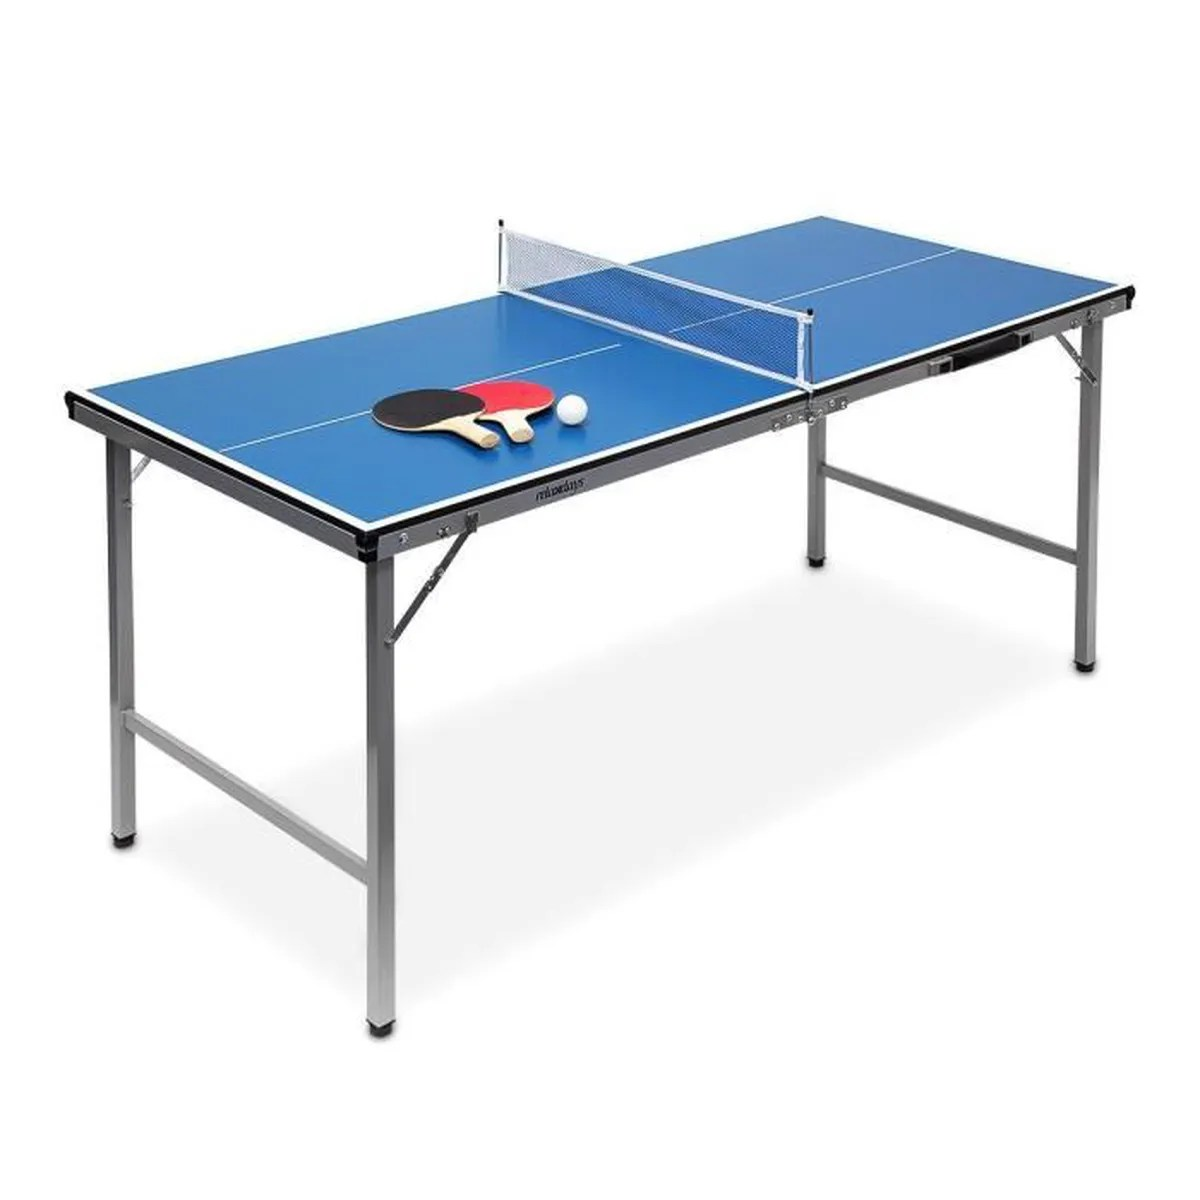 Table De Ping Pong Exterieur Occasion Table De Ping Pong Midi Jardin Portable Tennis De Table